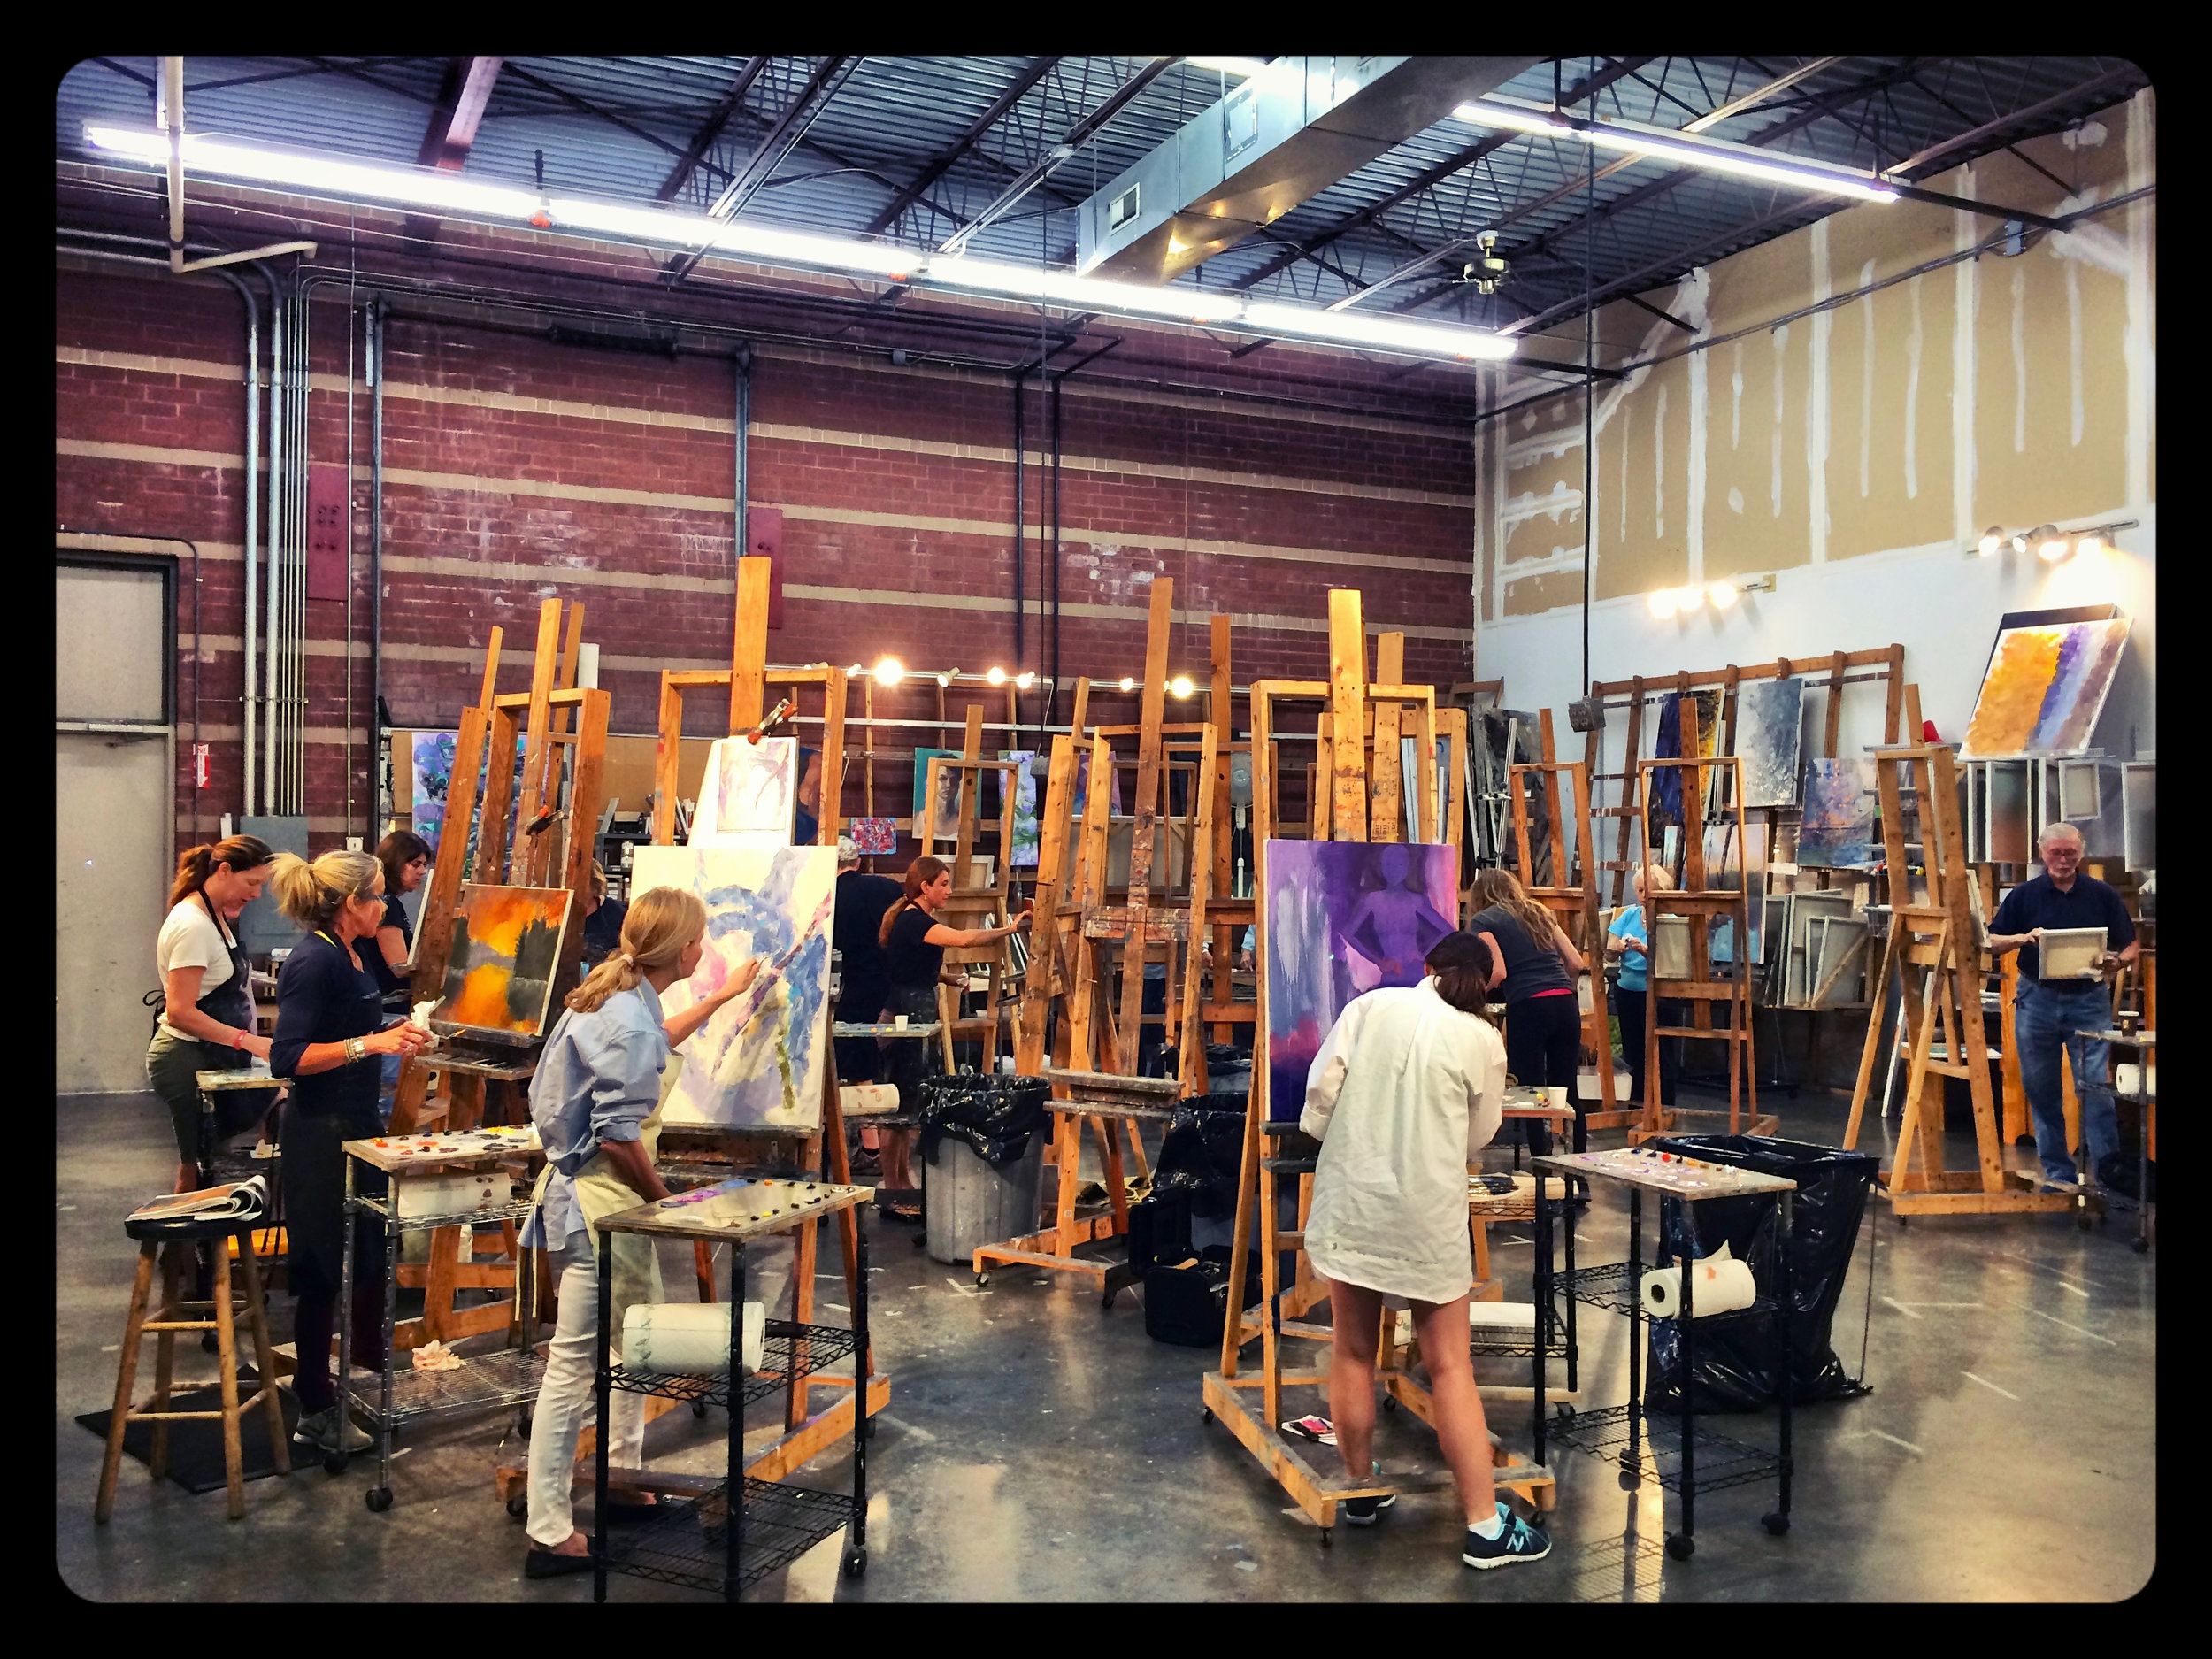 Braitman Studio Class in Action